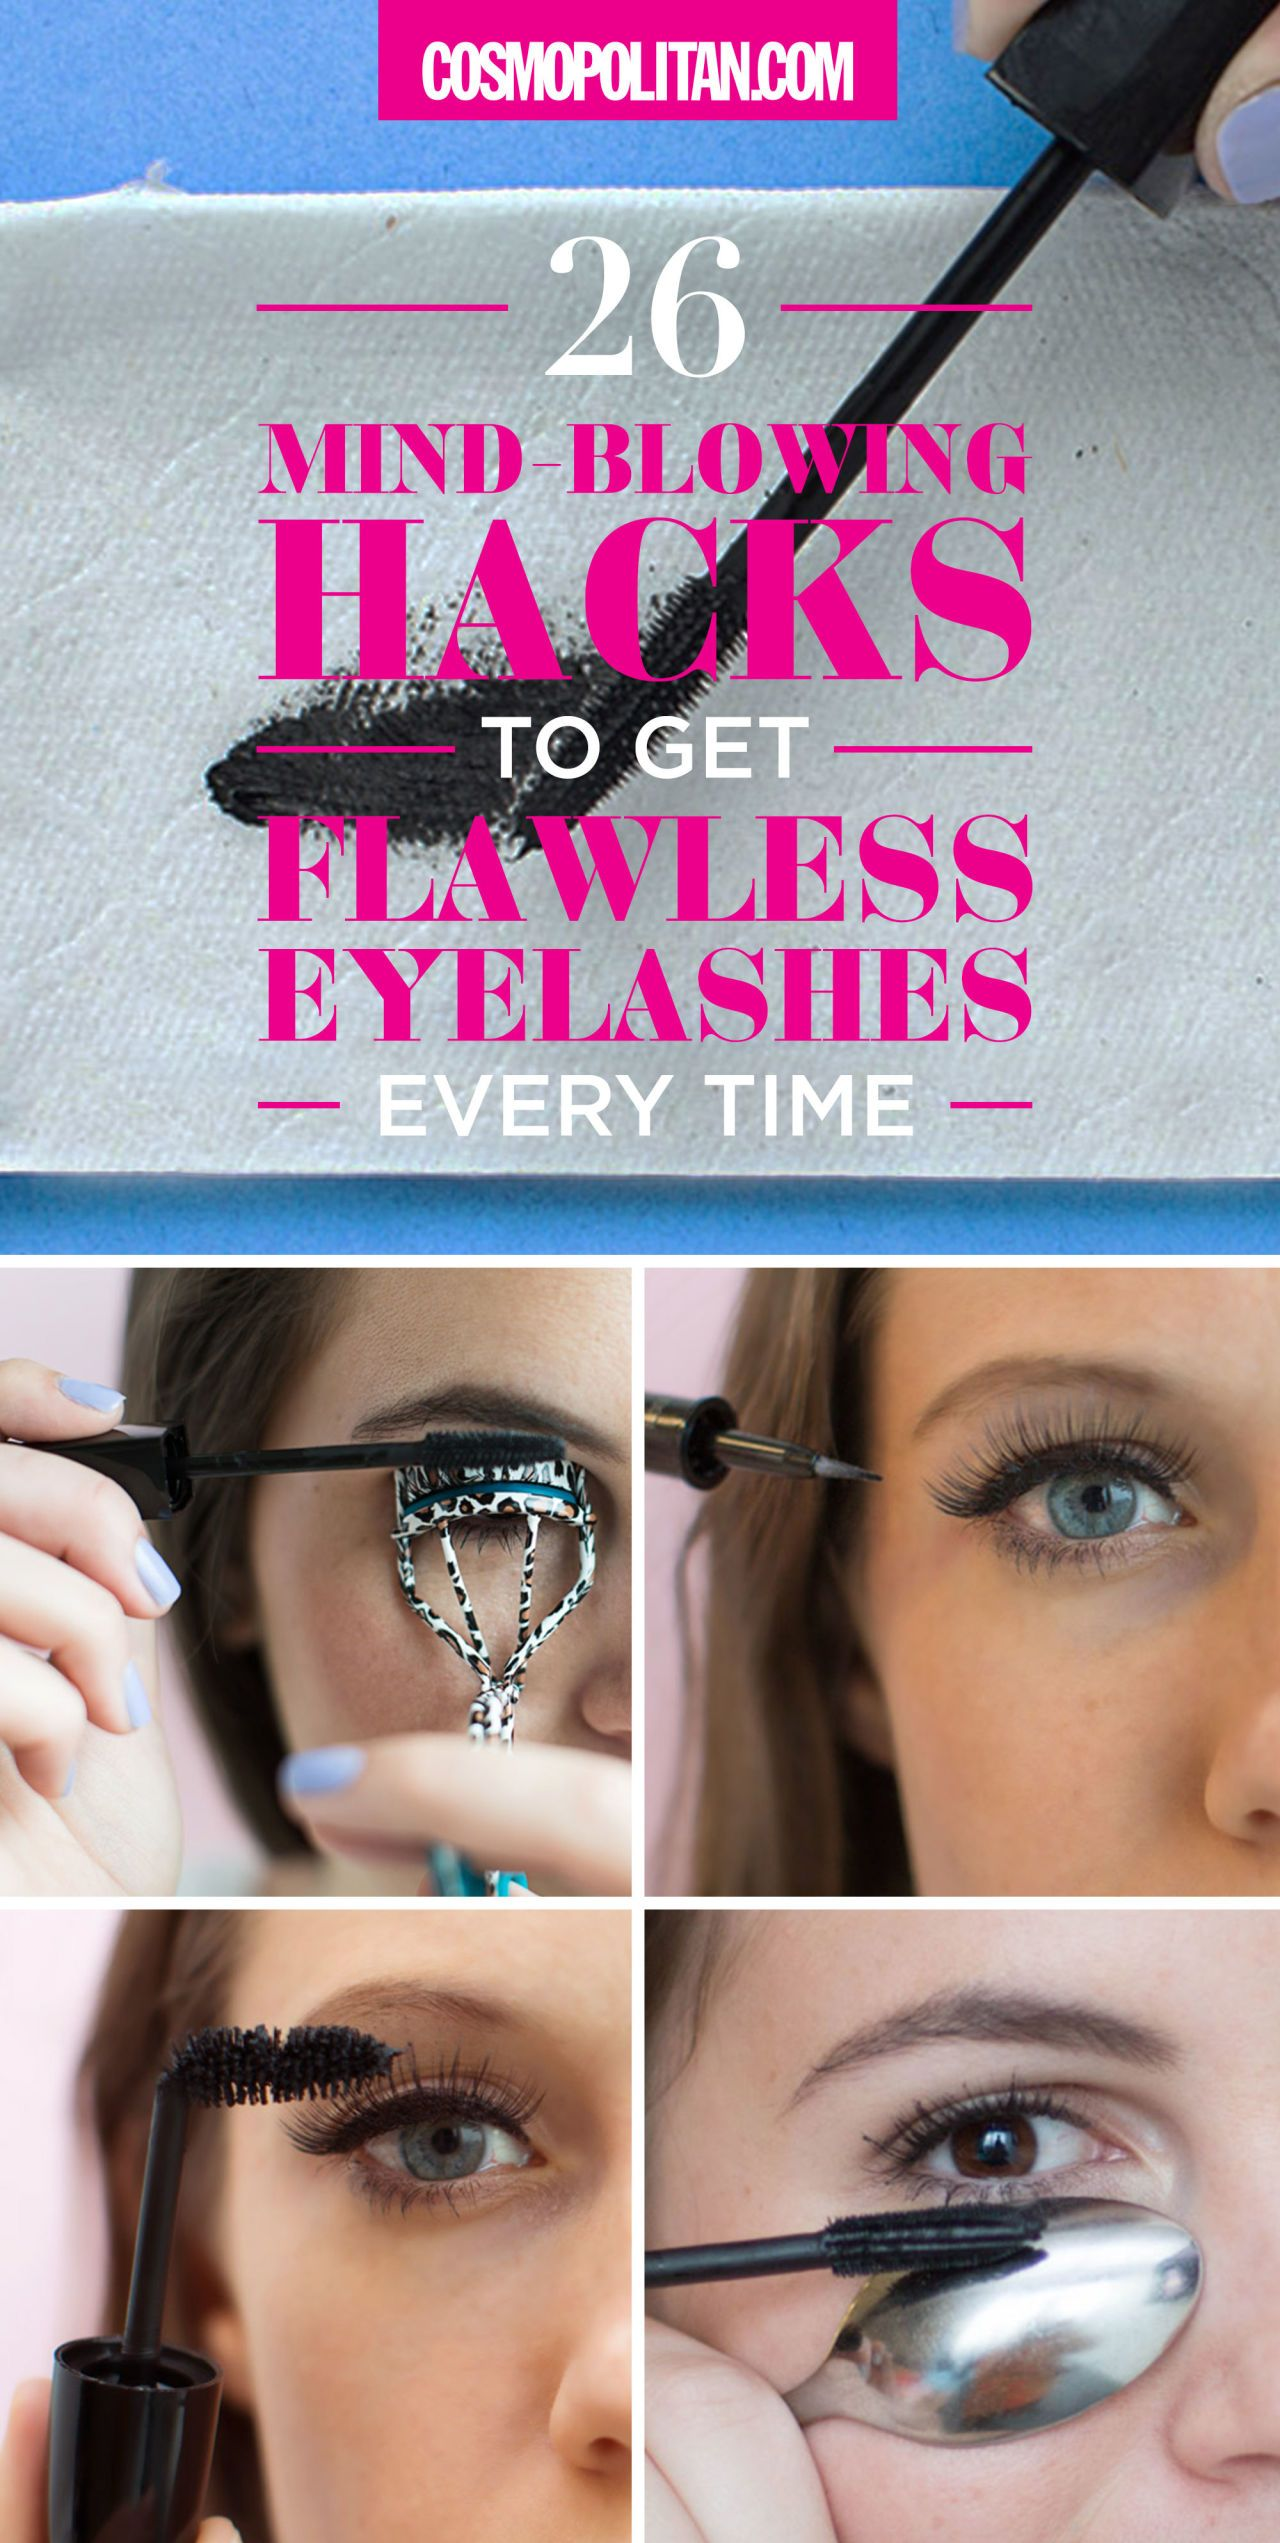 31 Mind Blowing Hacks To Get Flawless Eyelashes Every Time Cosmo